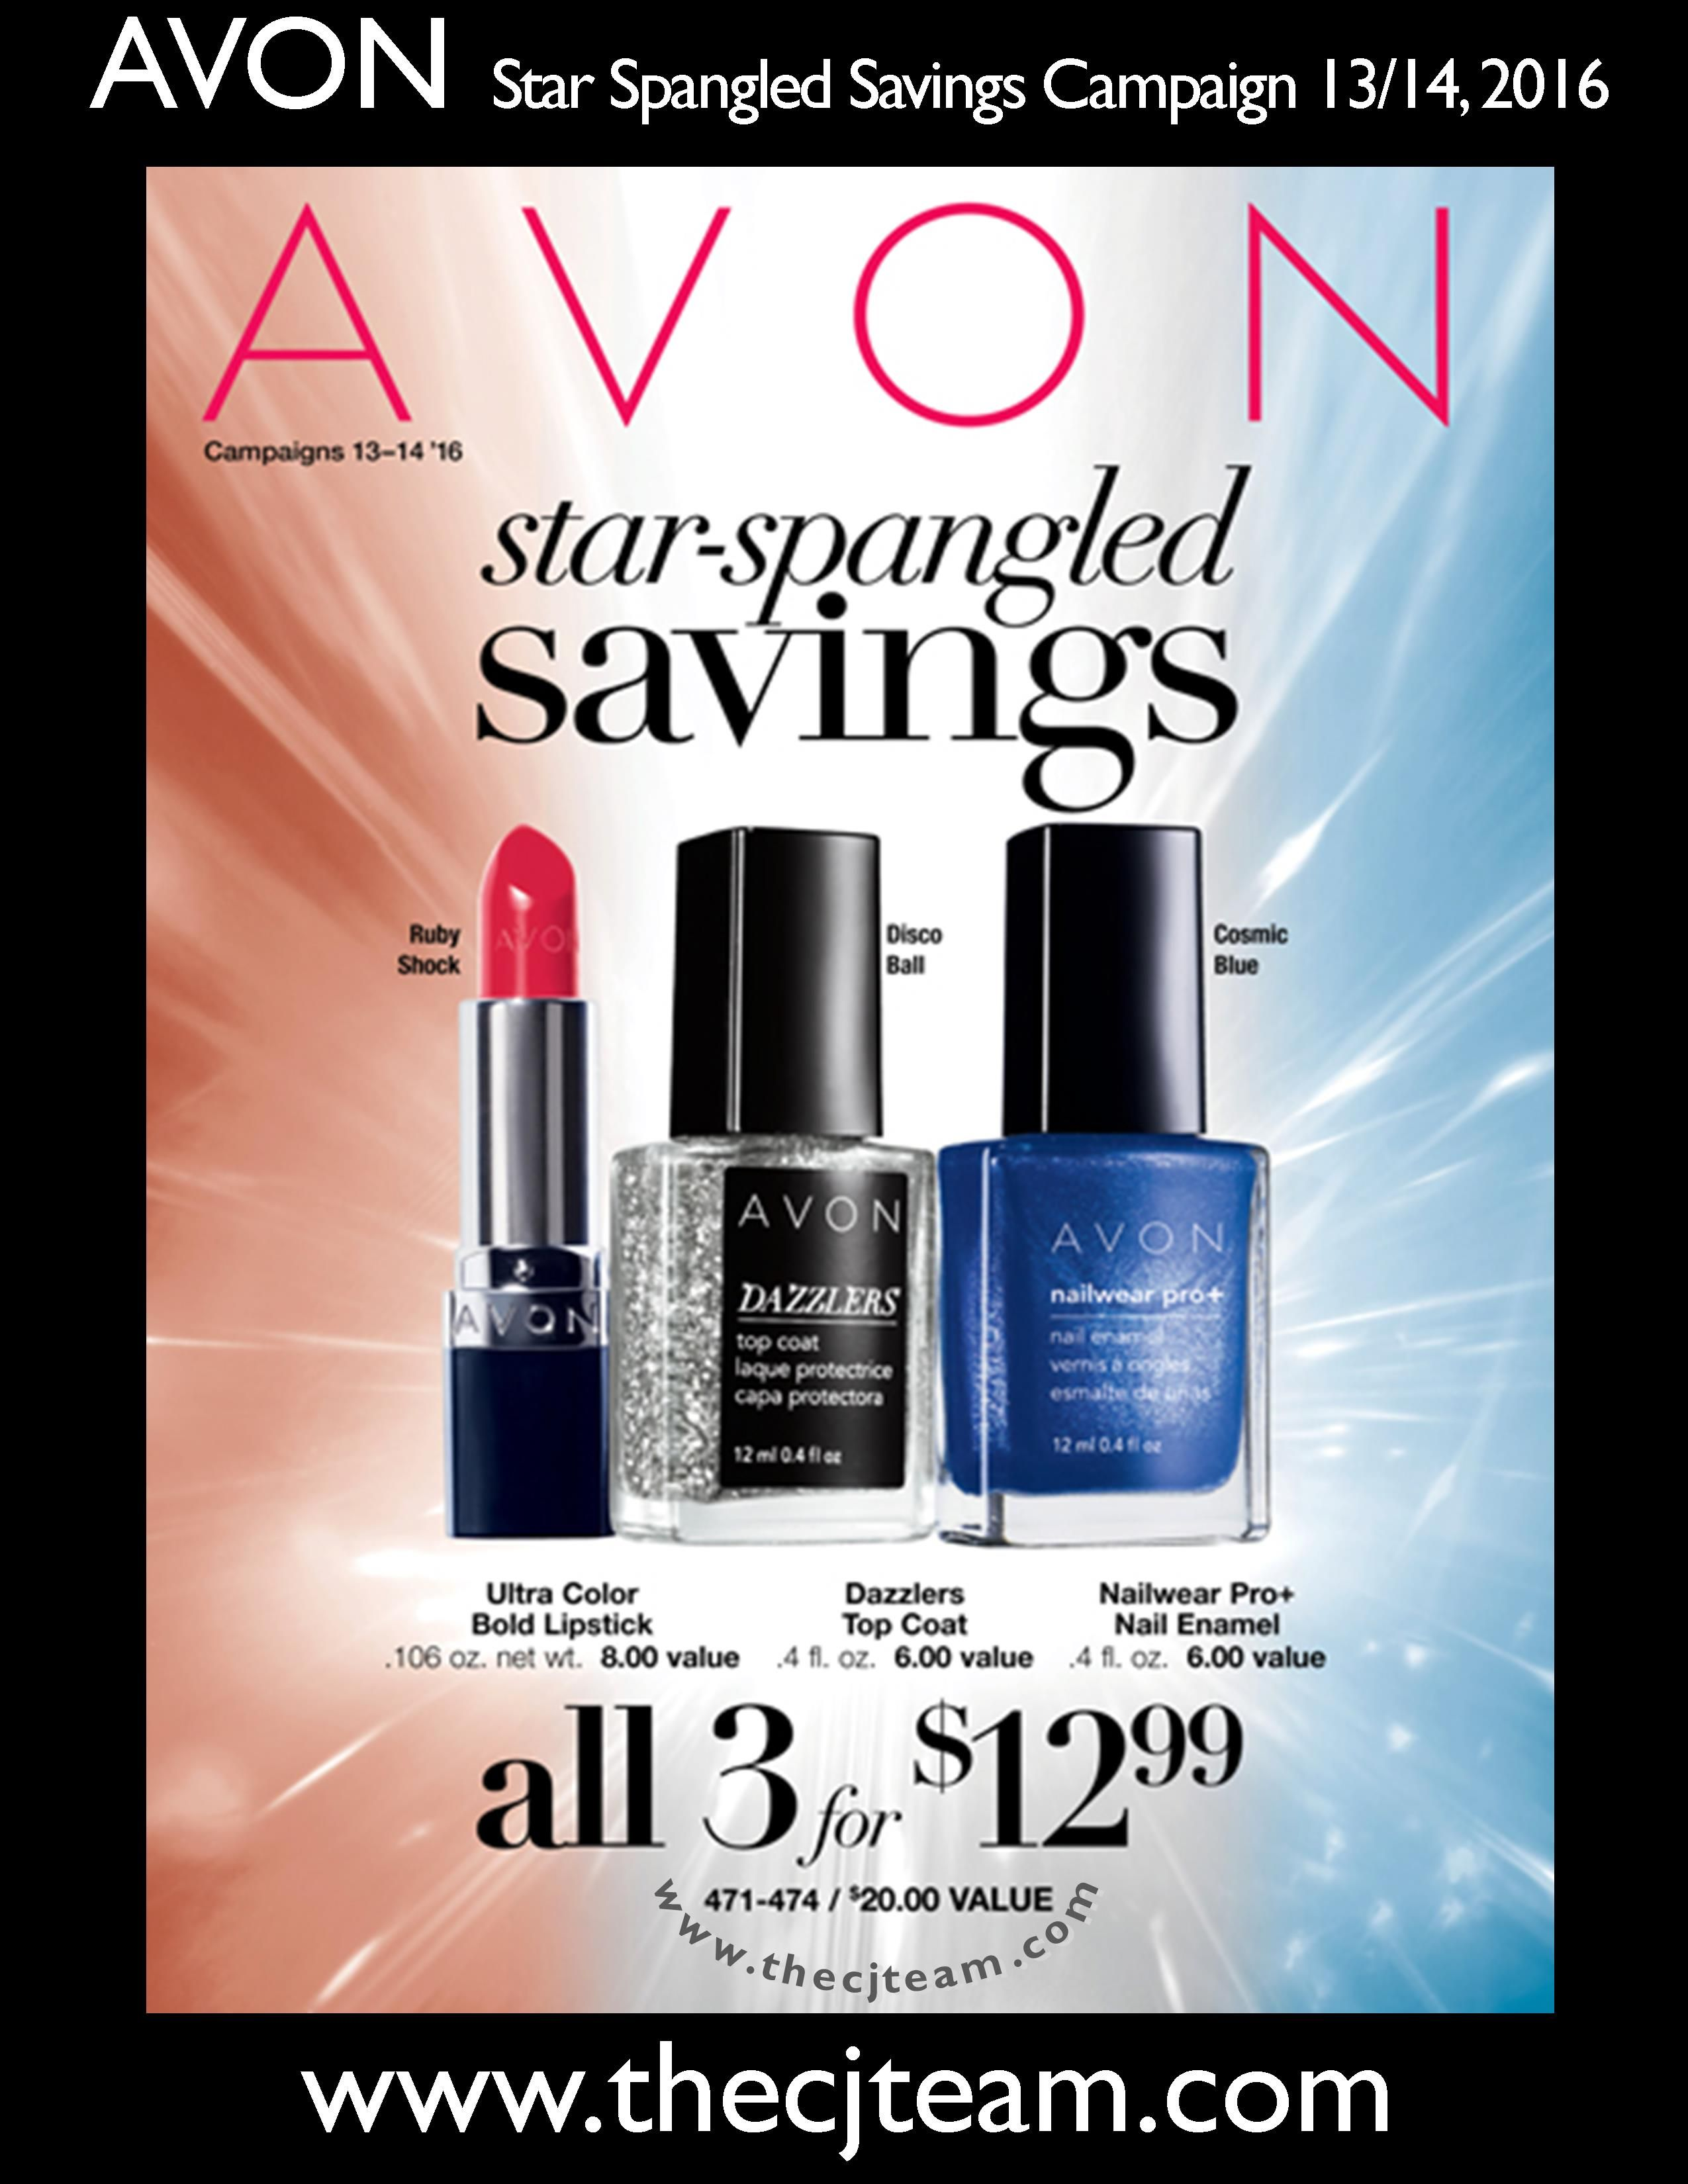 Shop Avon Campaign 13/14 2016 Star Spangled Savings Flyer.  Available online May 26, 2016 through June 22, 2016 #Avon #Outlet  #CJTeam #Sale #WhileSuppliesLast FREE shipping with any $40 online Avon purchase. Shop Avon online @ www.thecjteam.com